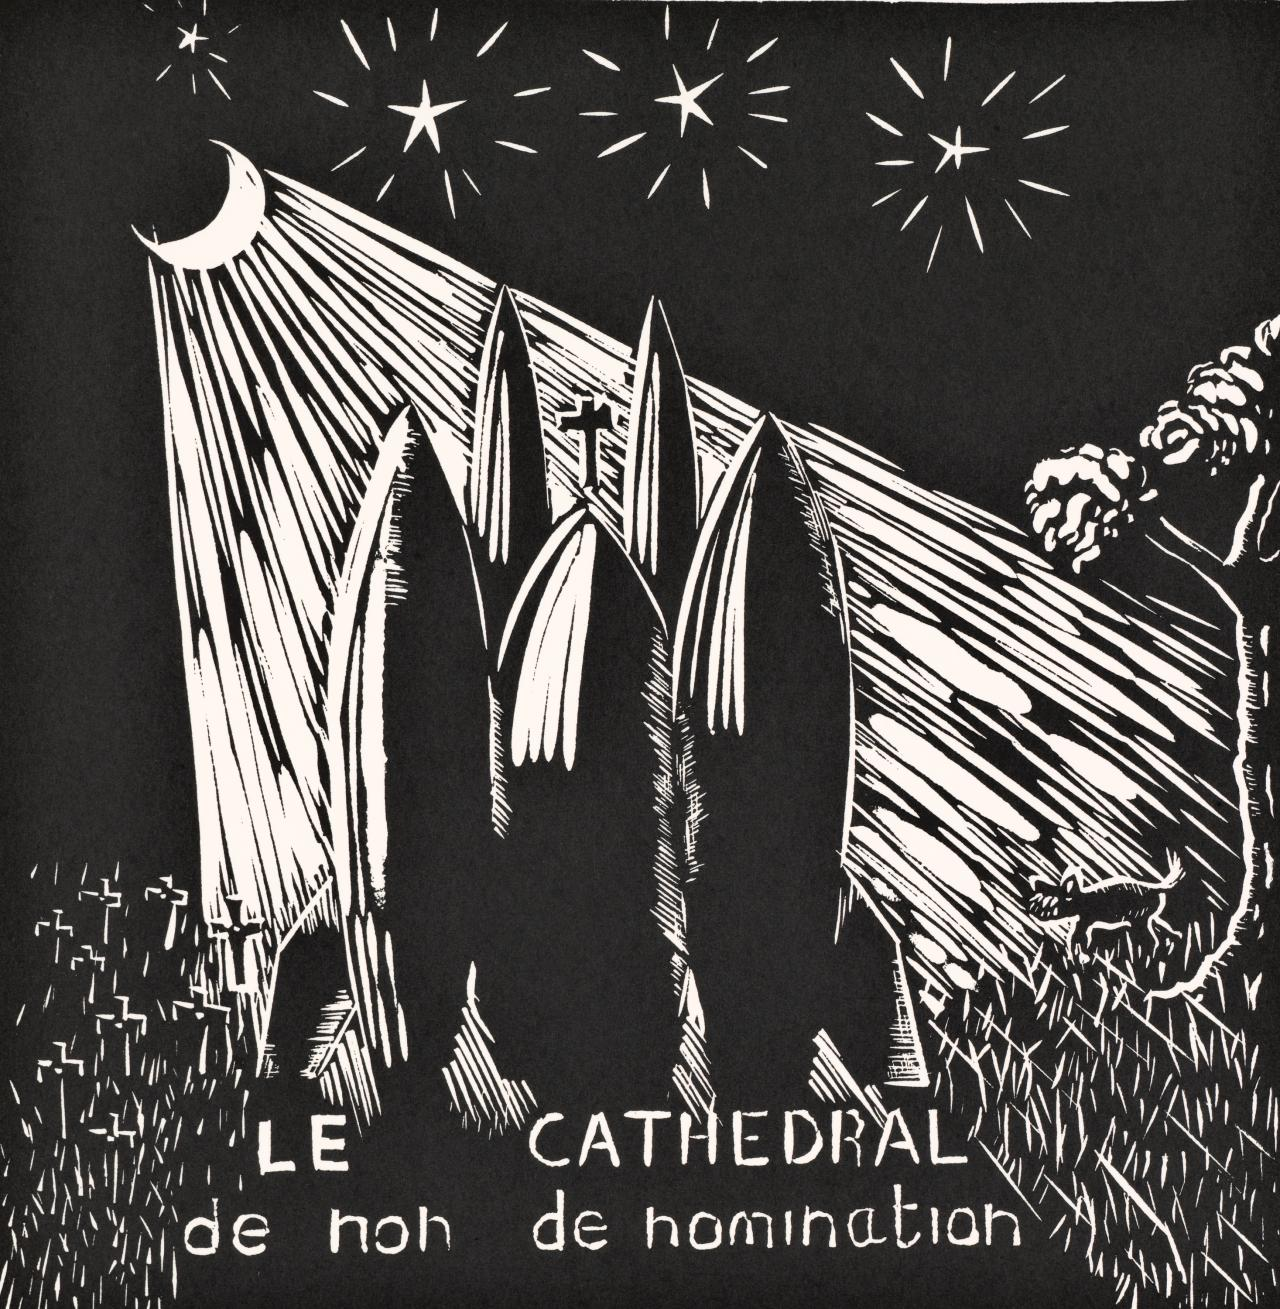 Le cathedral de non de nomination (or the worried dog)